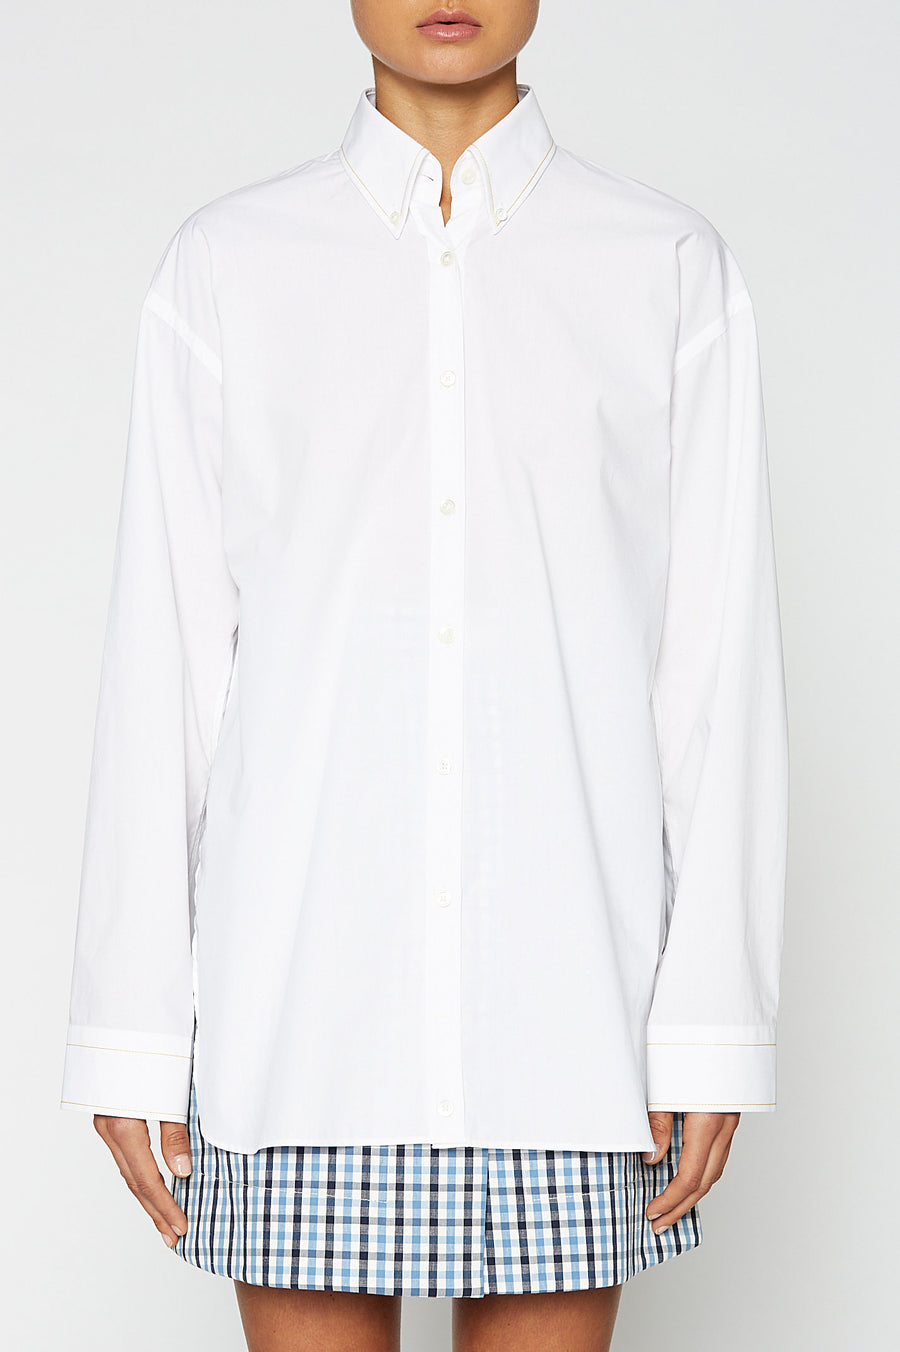 BUTTON COLLAR SHIRT, LONG SLEEVE, OVERSIZED, WHITE, YELLOW STITCHING color